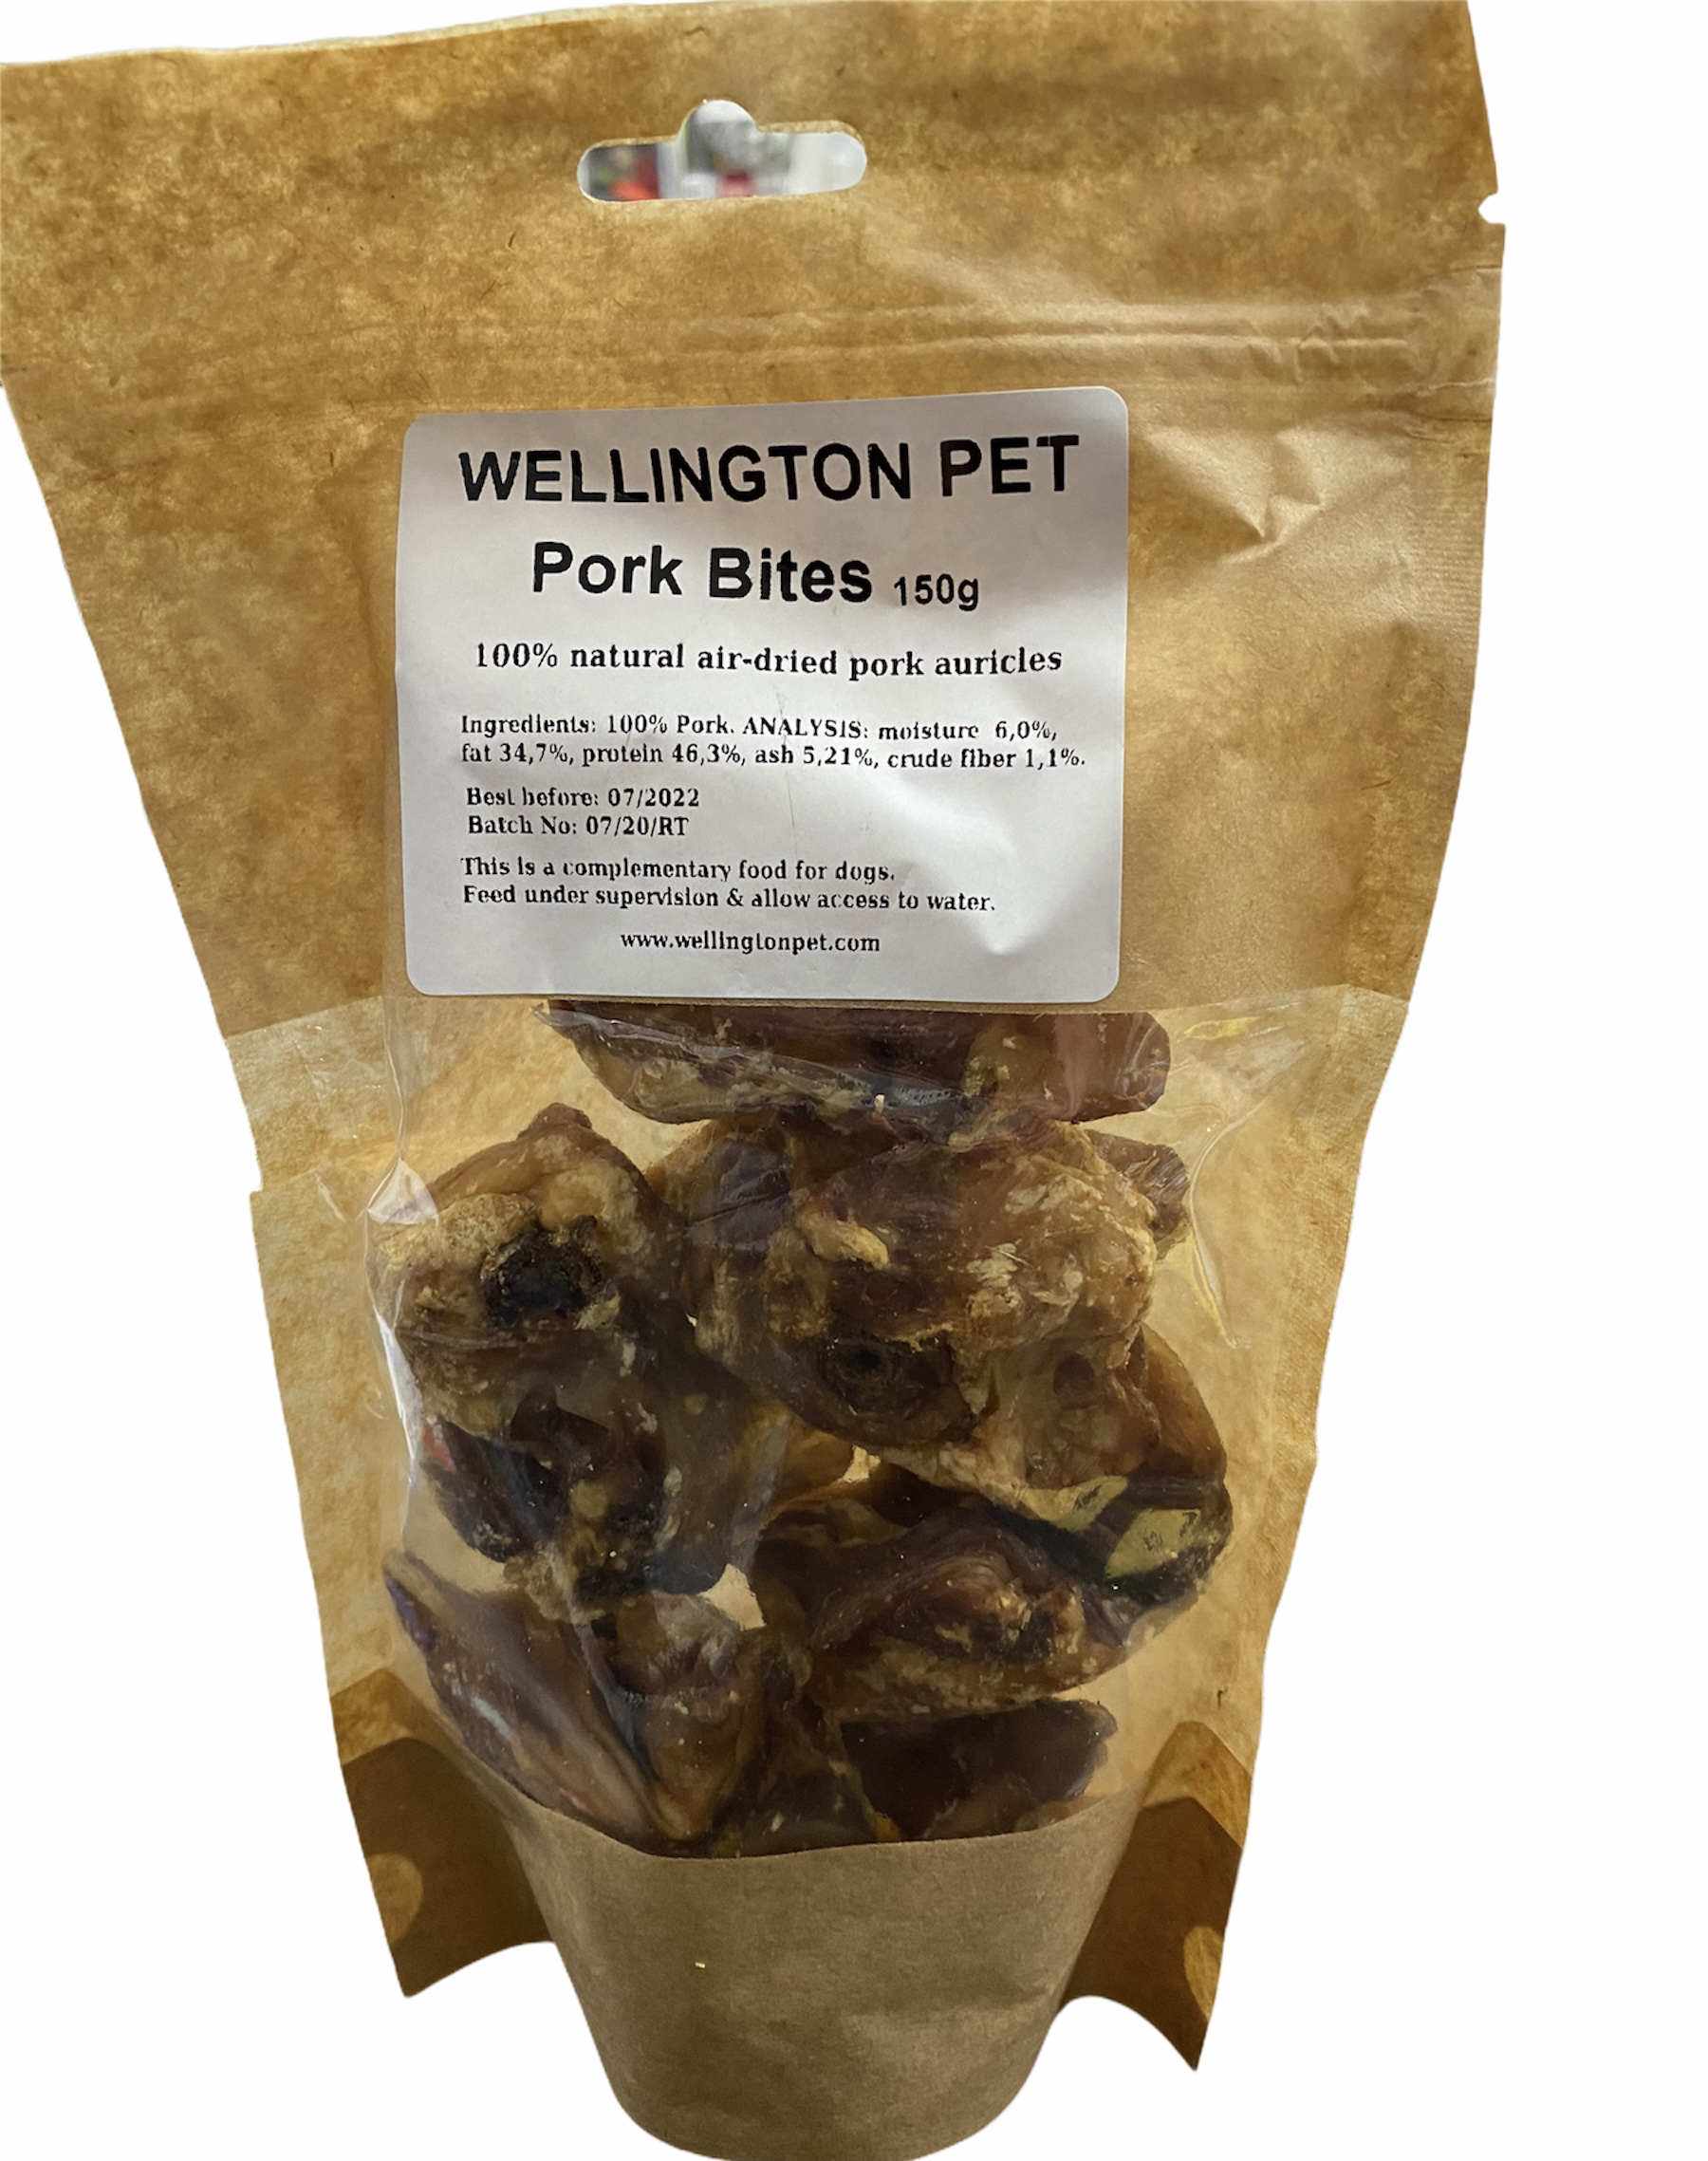 Wellington Pork Bites 150g Bag